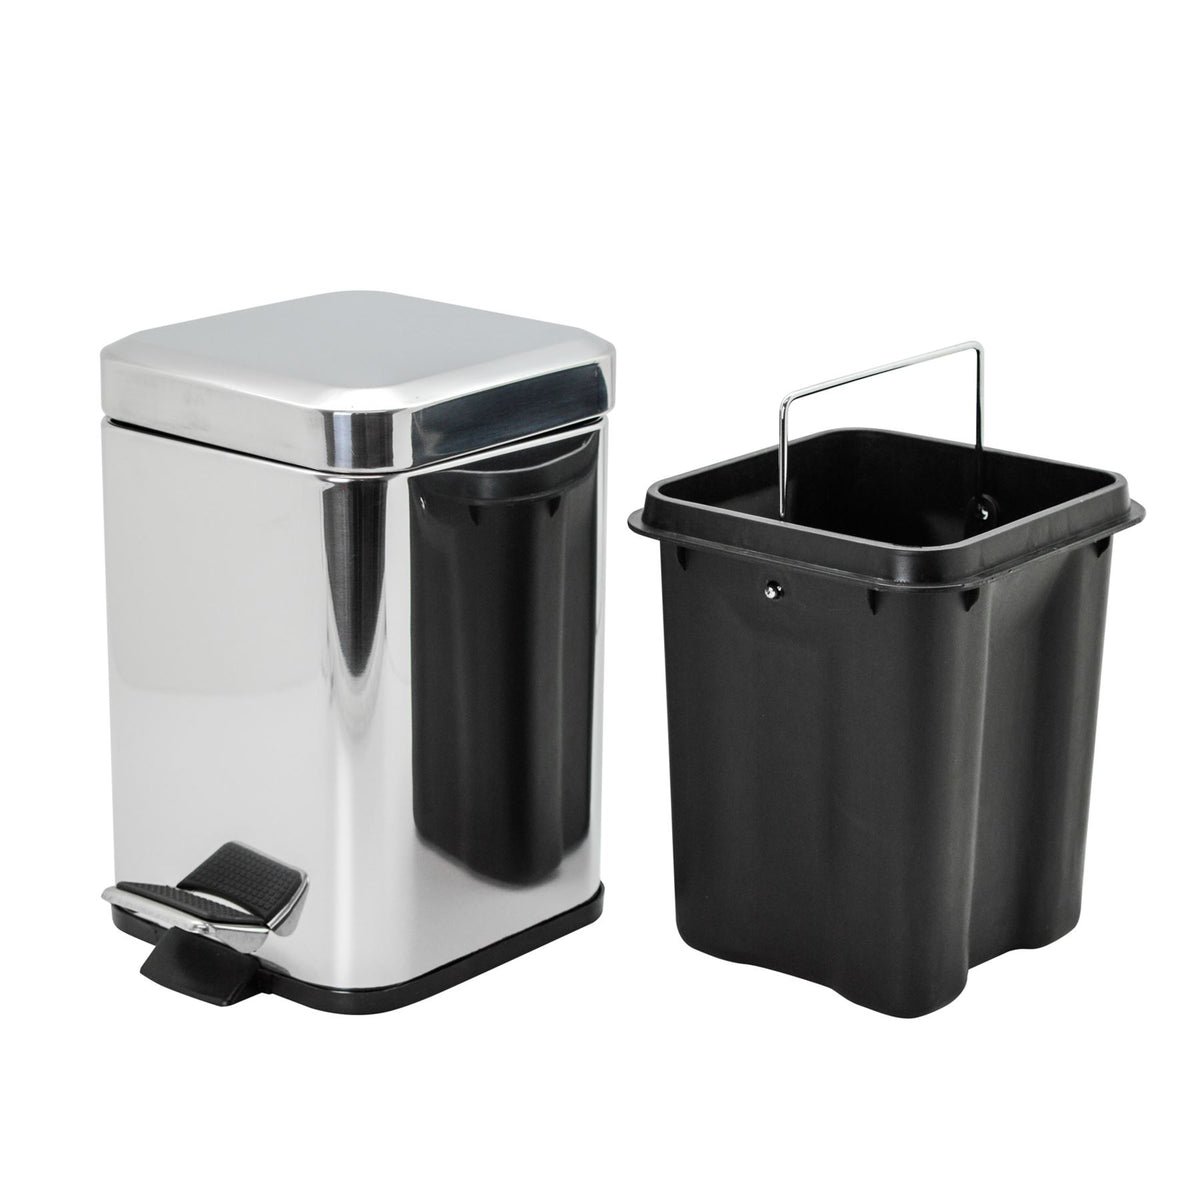 Harbour Housewares Square Steel Bathroom Pedal Bin - 3 Litres - Chrome